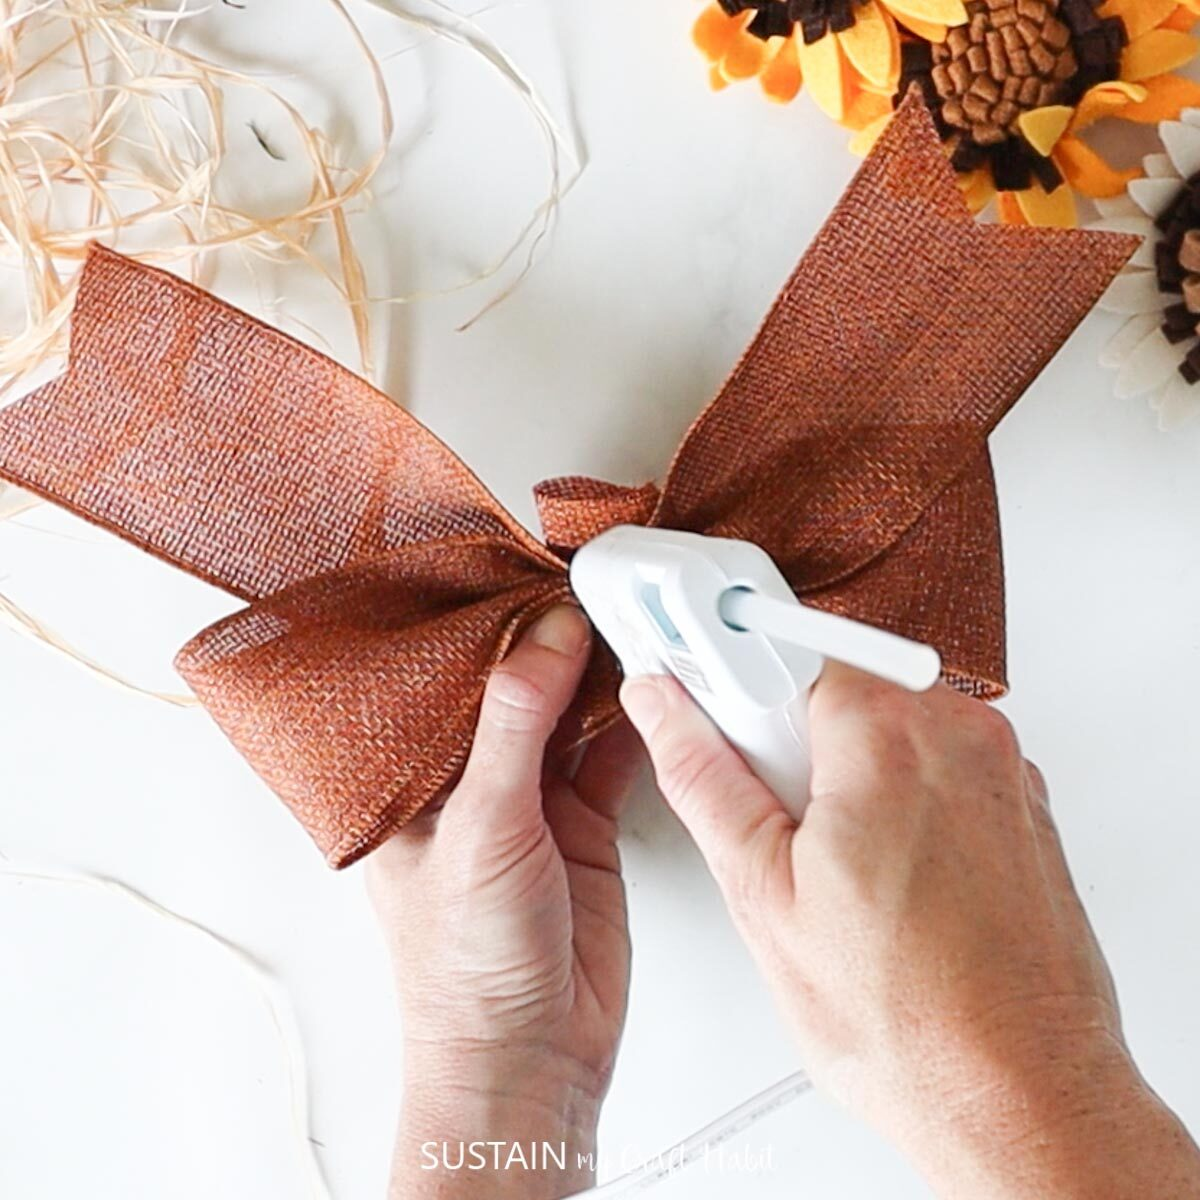 hot gluing a piece of ribbon in the middle of the bow.